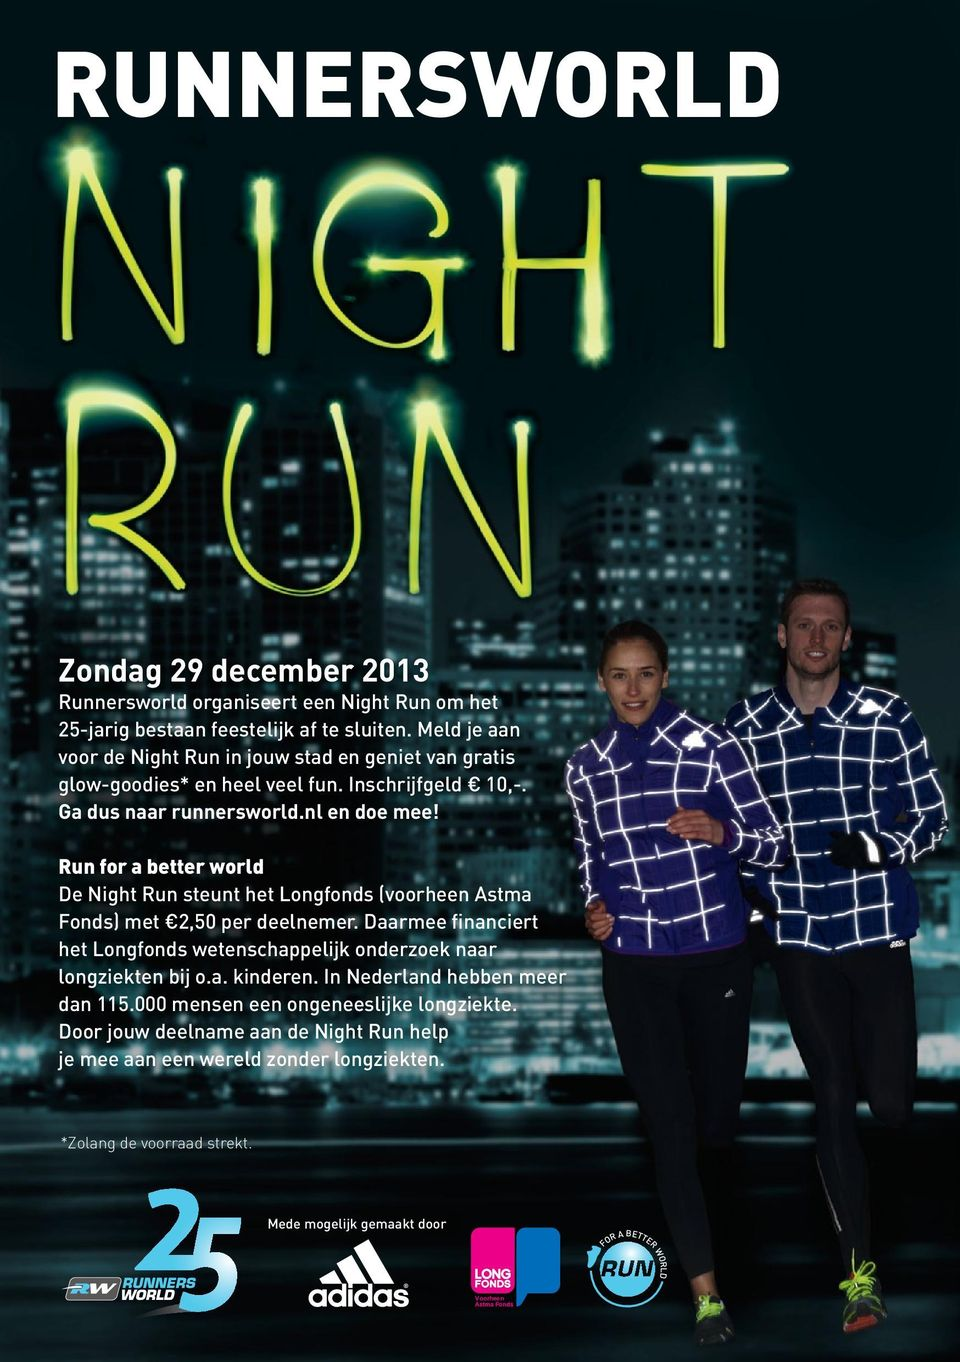 Run for a better world De Night Run steunt het Longfonds (voorheen Astma Fonds) met 2,50 per deelnemer. Daarmee financiert het Longfonds wetenschappelijk onderzoek naar longziekten bij o.